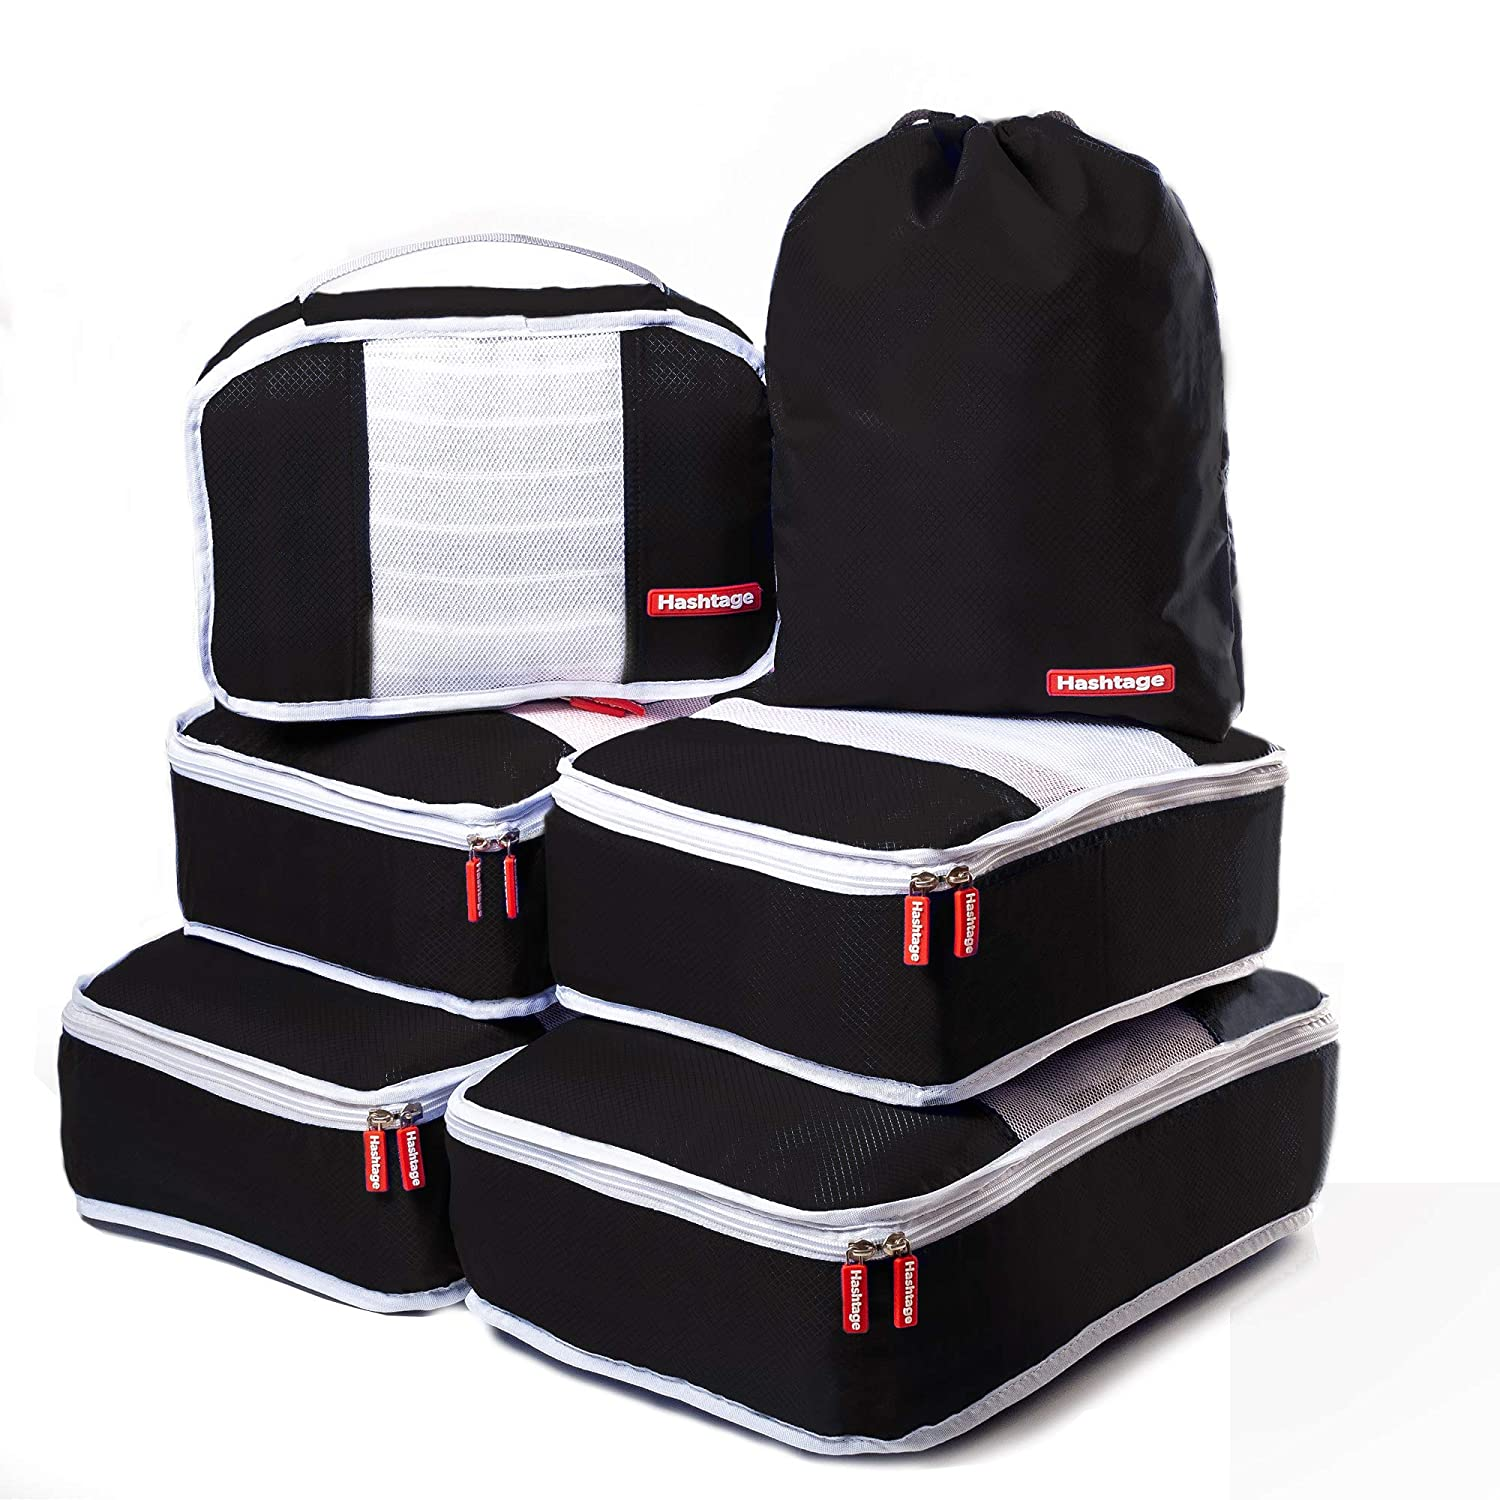 b23d0fc2a94d Hashtage® Packing Cubes, 6 Set Packing Bags, Lightweight Packing ...